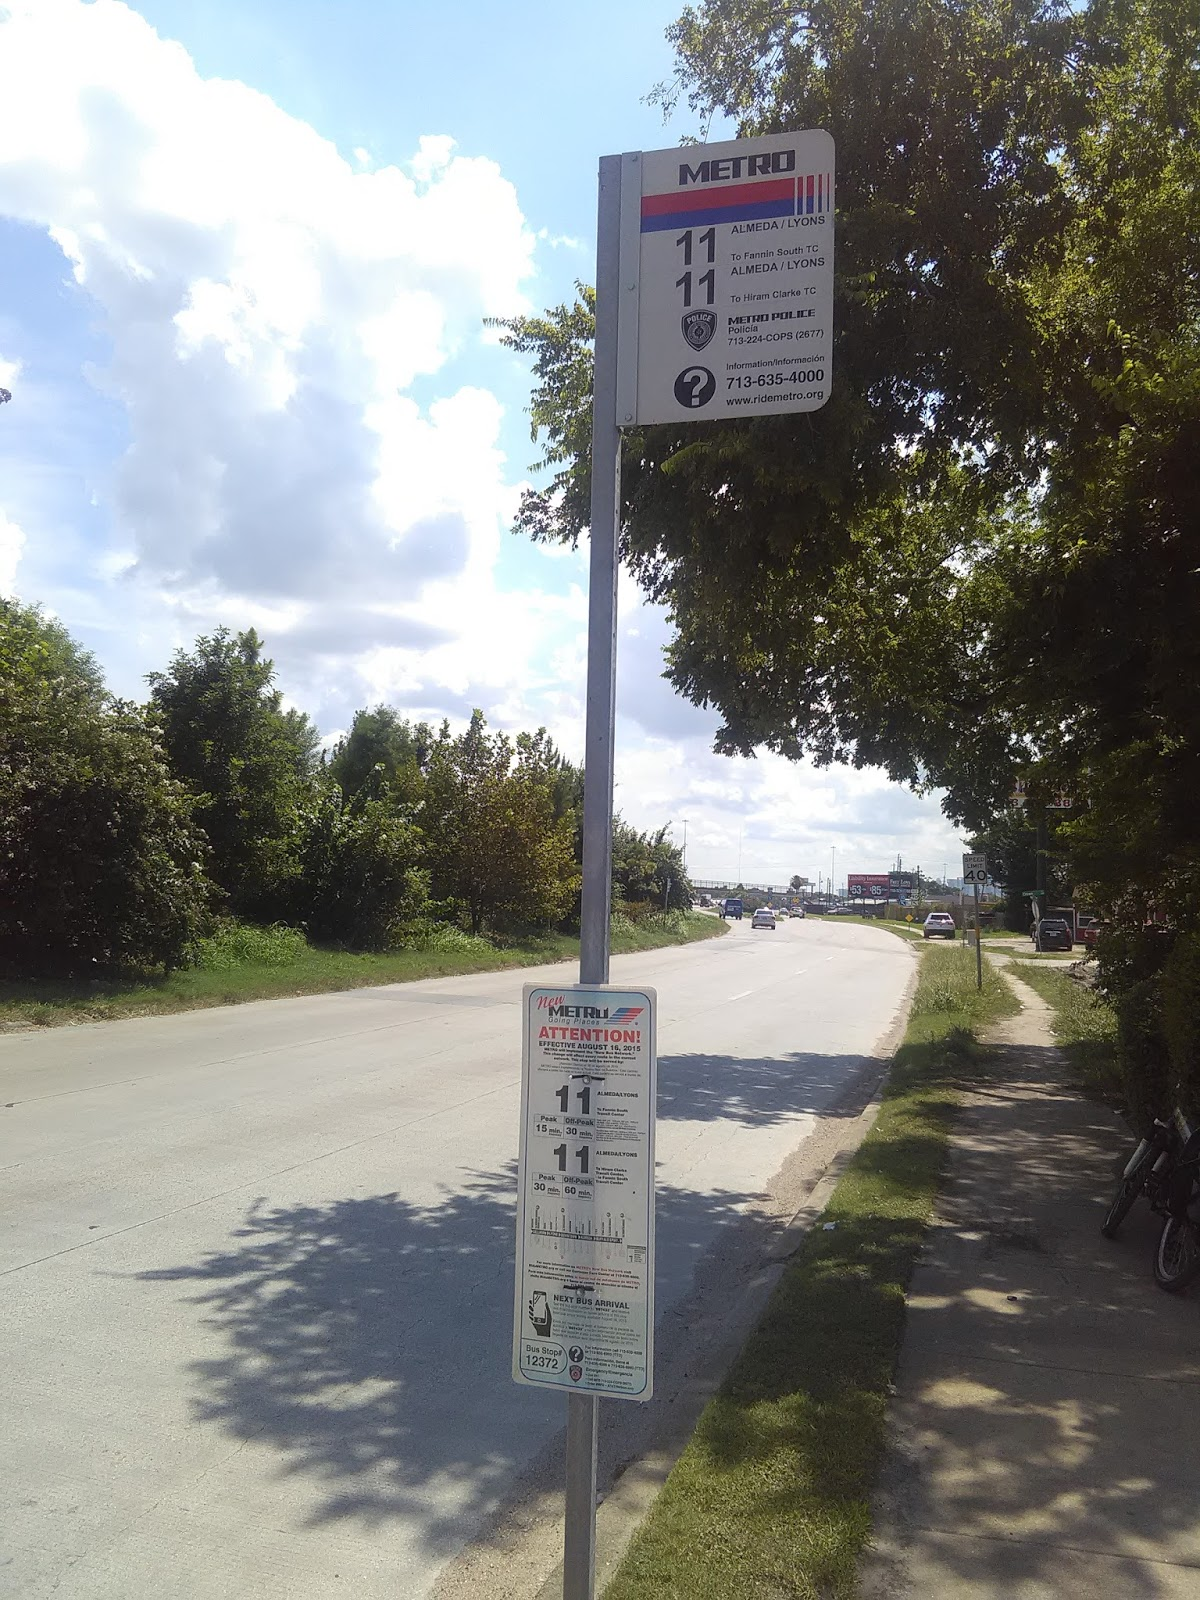 Bicycle San Antonio Transit System Bus Stop Hand Grip Kansa Busa Houston Tx Metro Rating 3 5 Stars Missing 4 It Should Have A Serial Number The Times When Comes Kansas City